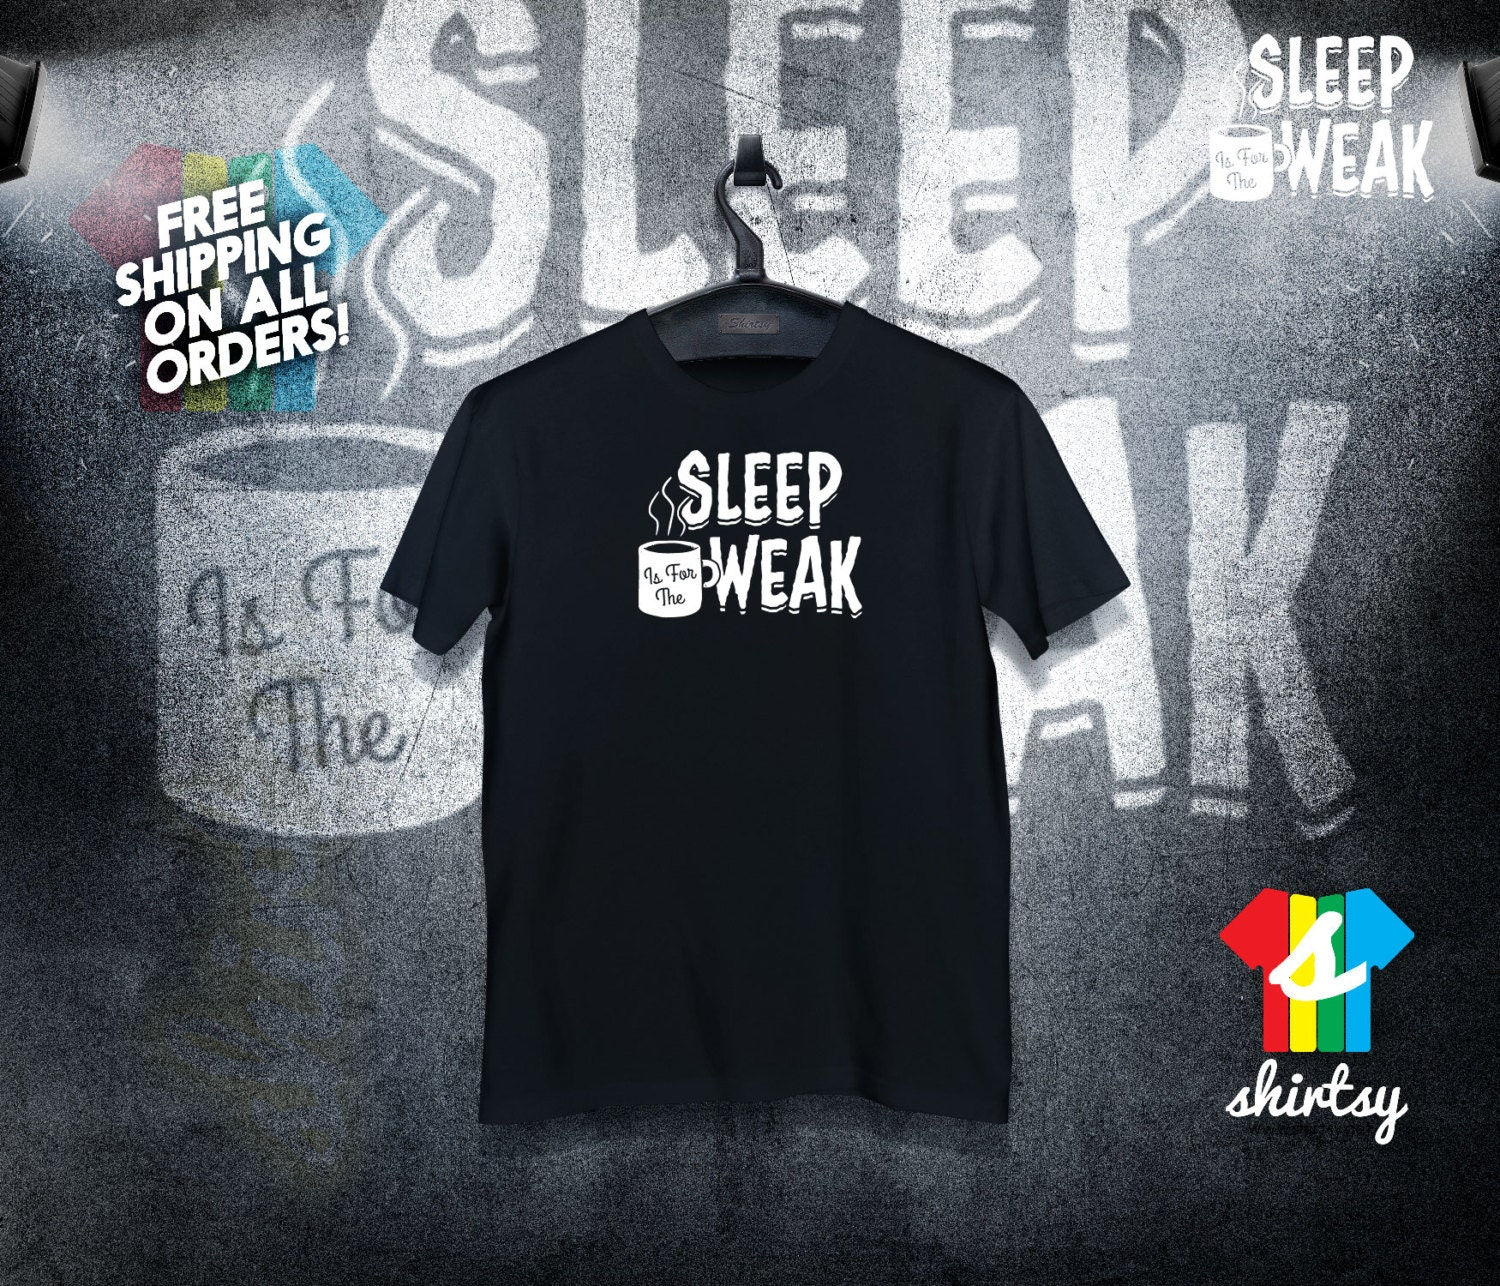 Sleep is for the Weak T-shirt Coffee Coffee Lover Tee Tumblr Shirt Hipster Instagram Shirt Graphic Tee Gift